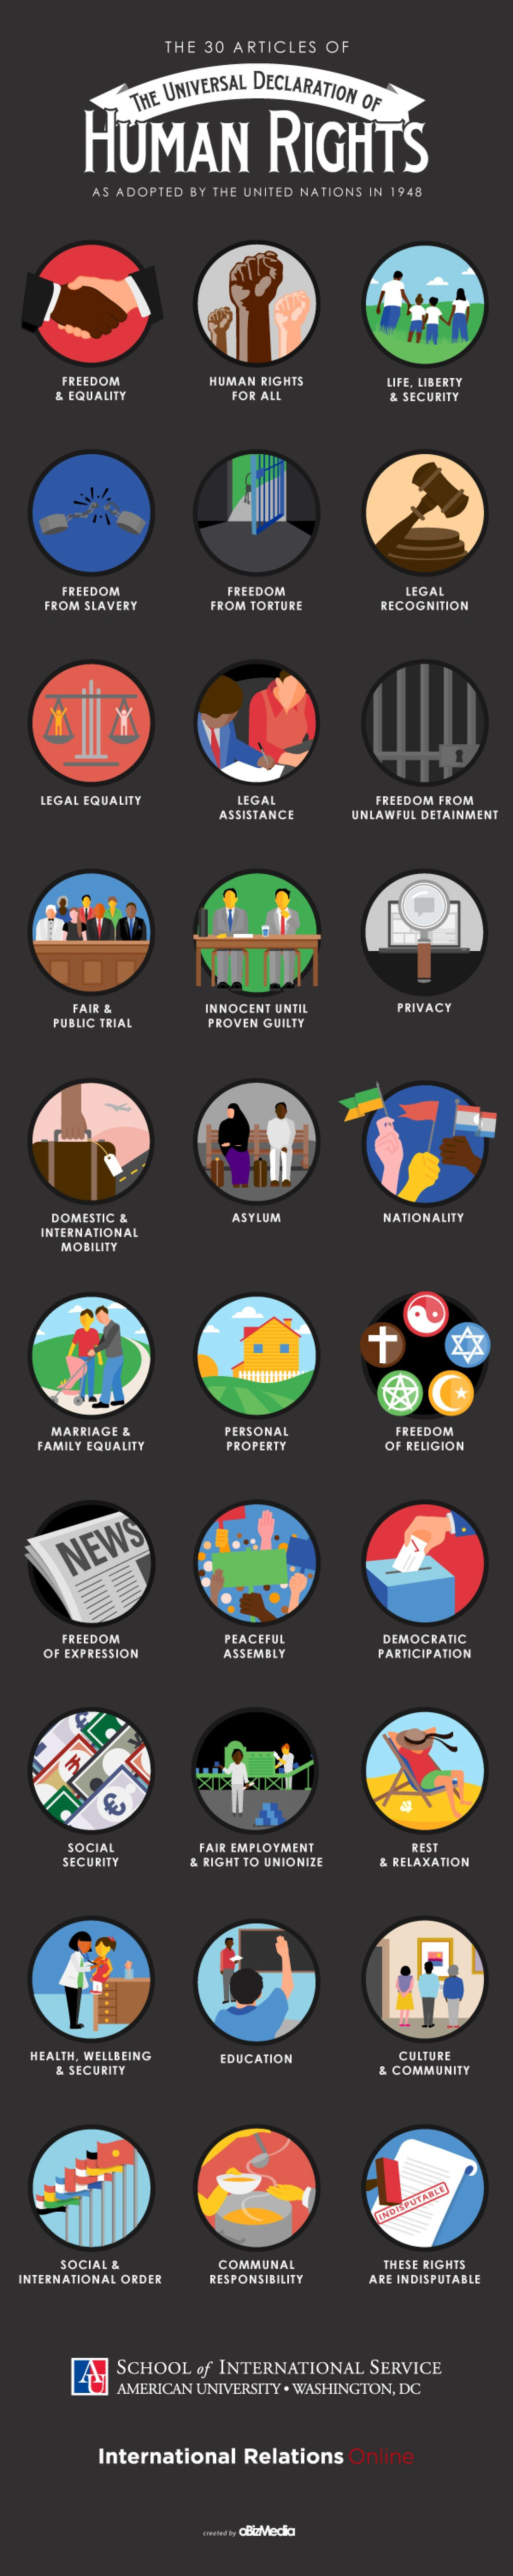 Understanding our basic human rights #humanrights #infographic